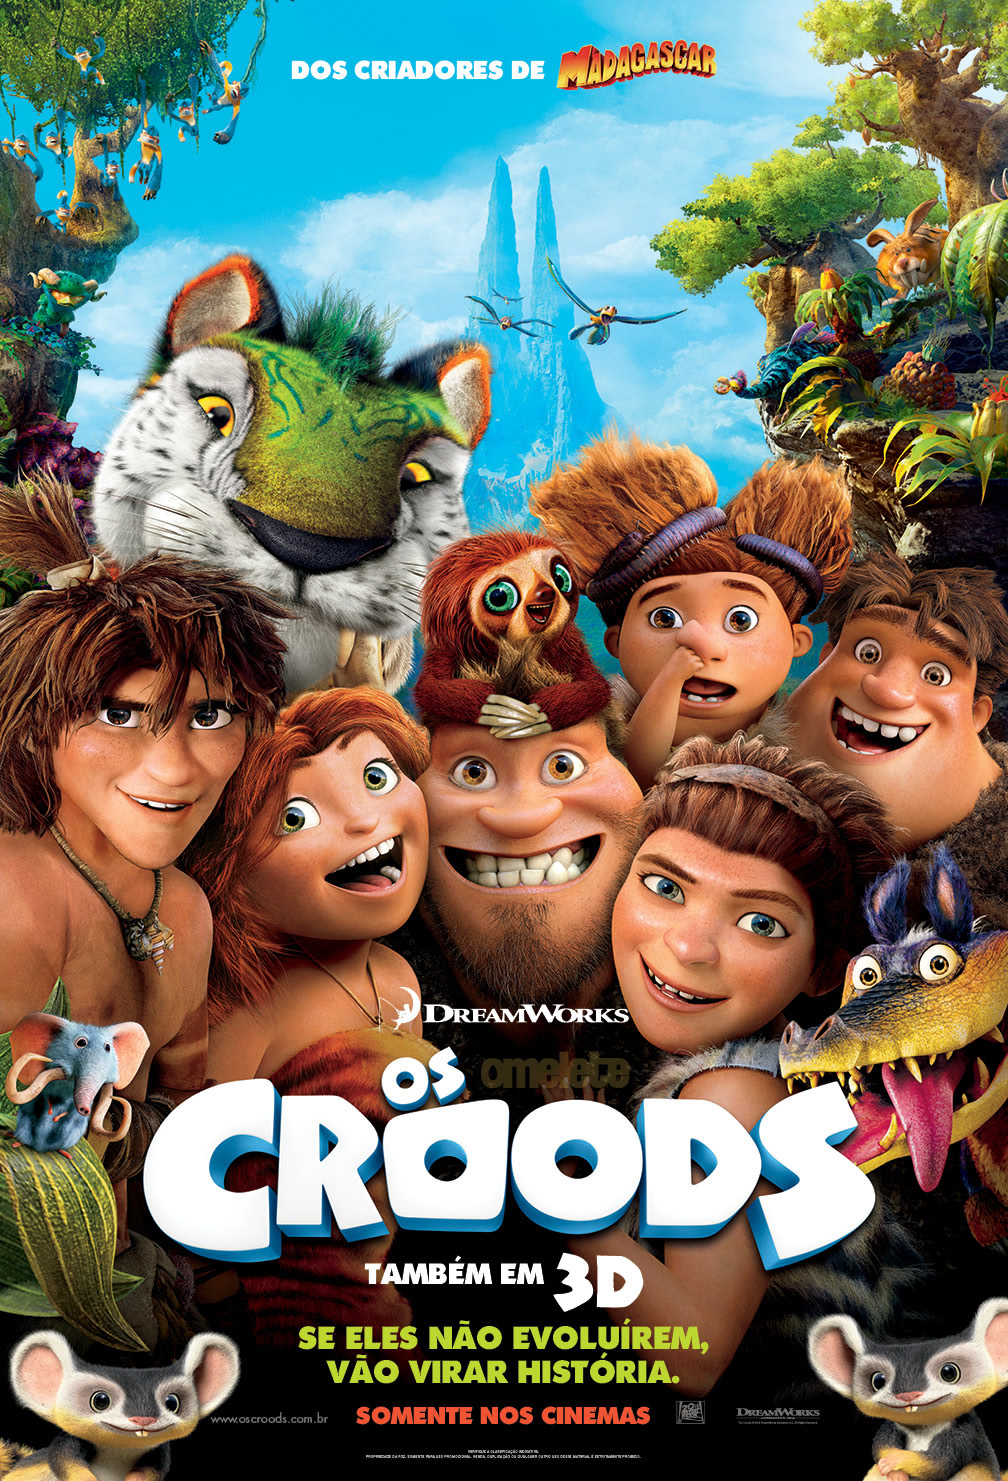 Os Croods (The Croods) (2013) DVDRip Dual Áudio e DVD R   Torrent Torrent Grátis